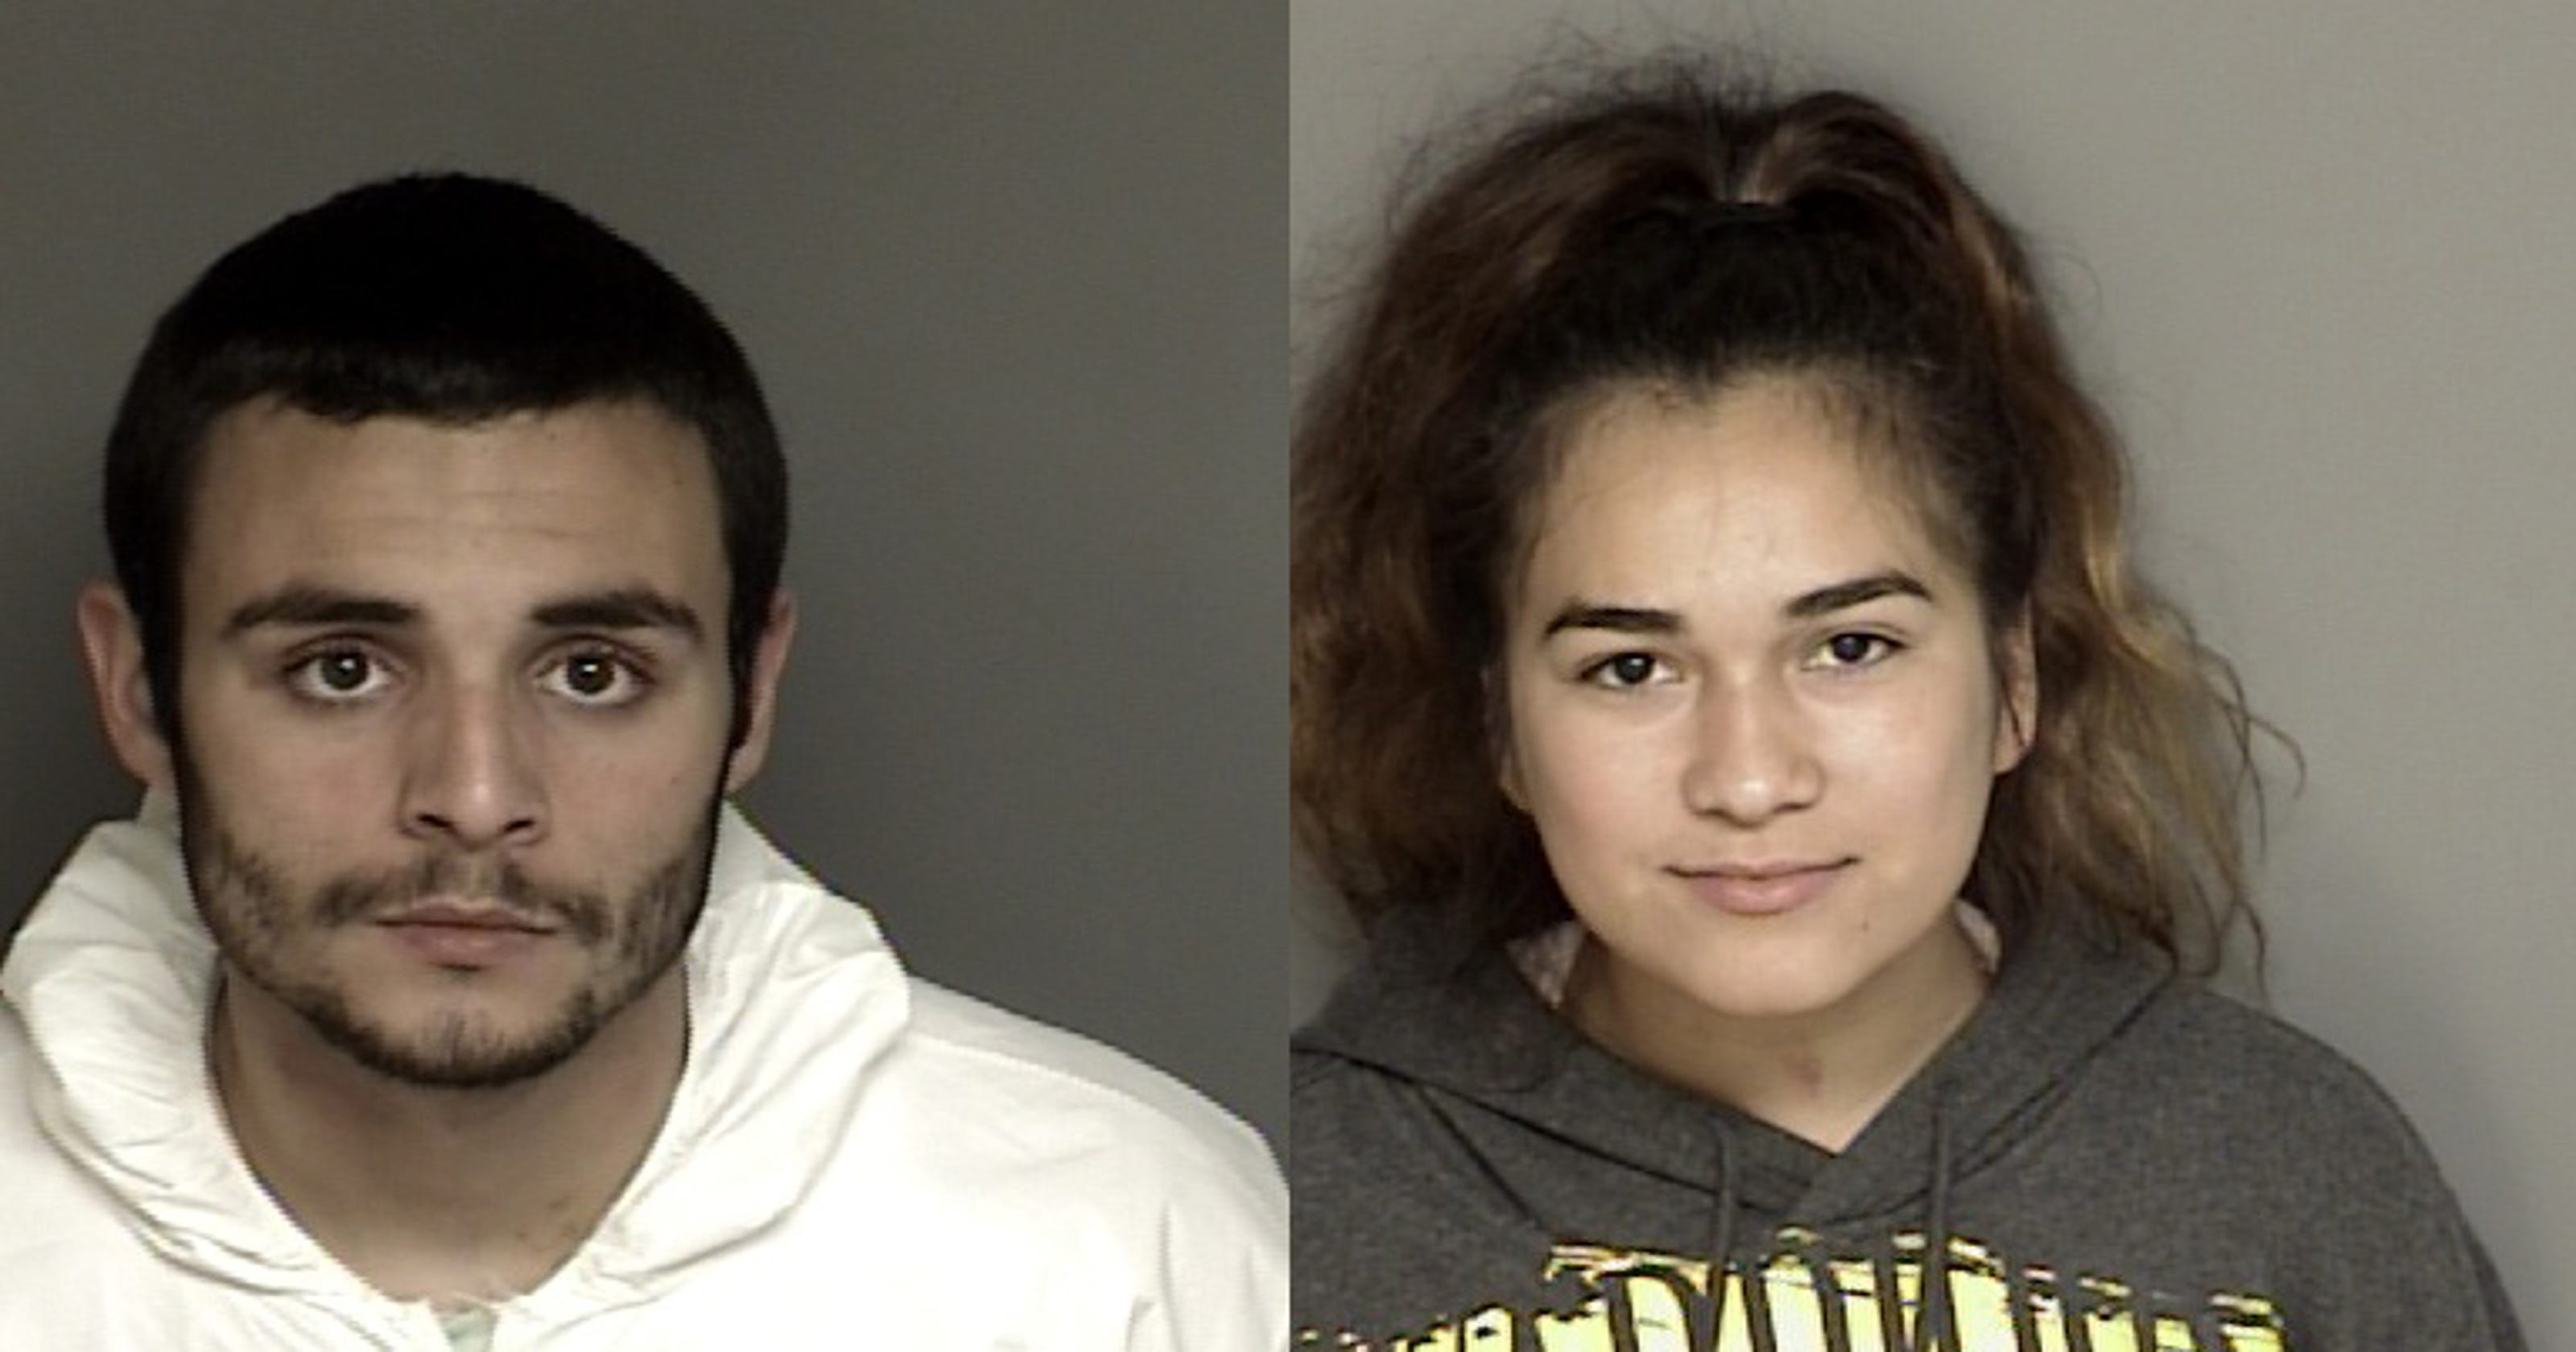 Salinas police: Gang leader directed young couple to commit